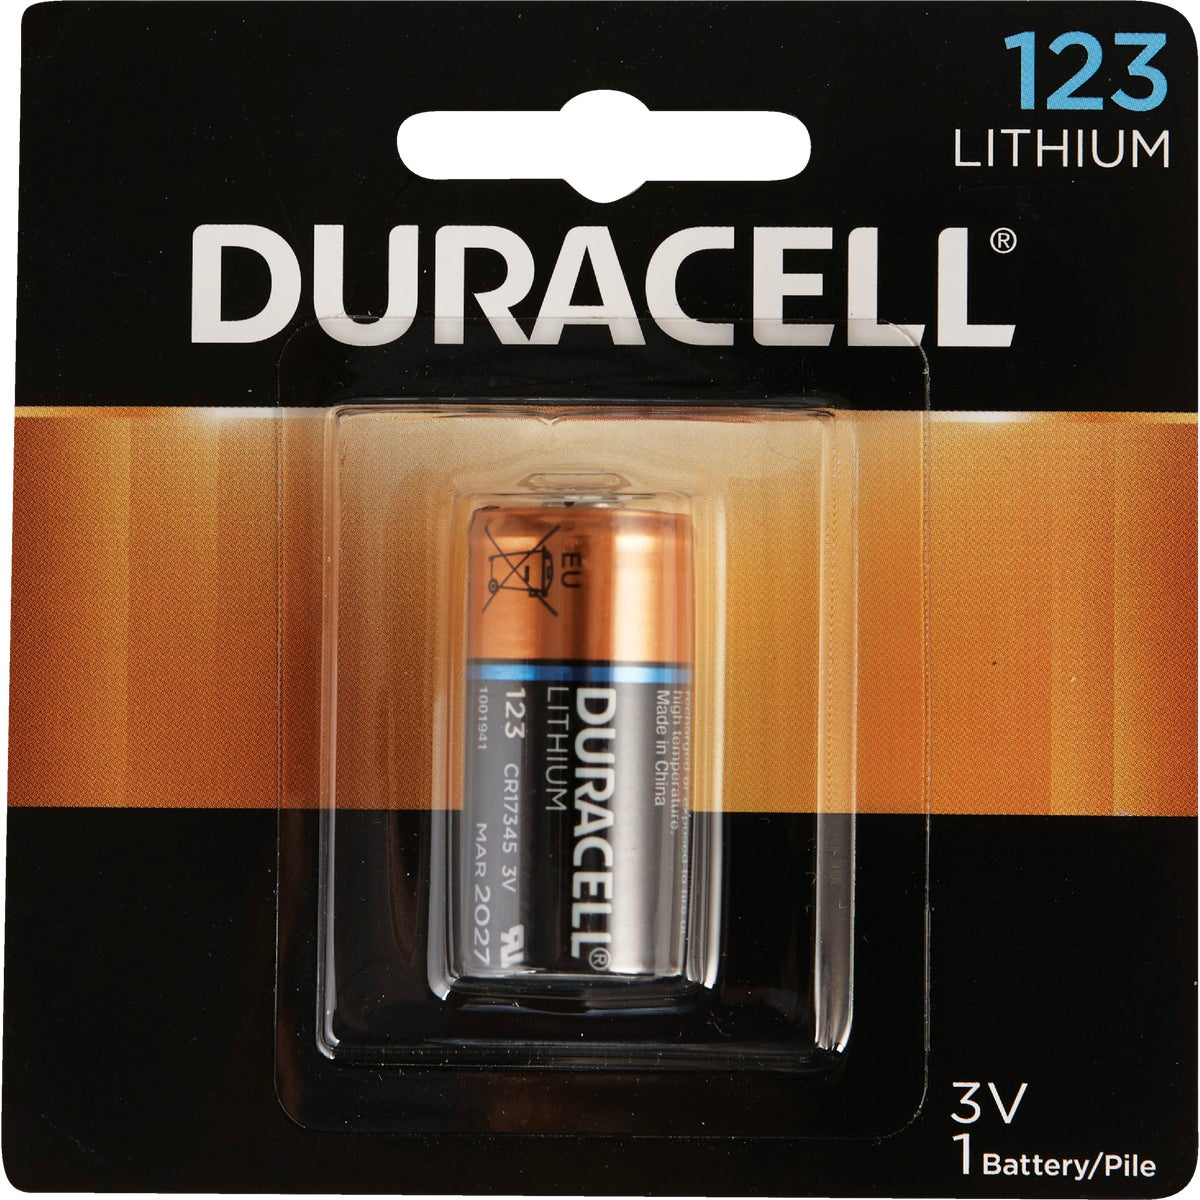 DL123 3V CAMERA BATTERY - DL123ABPK by P & G  Duracell